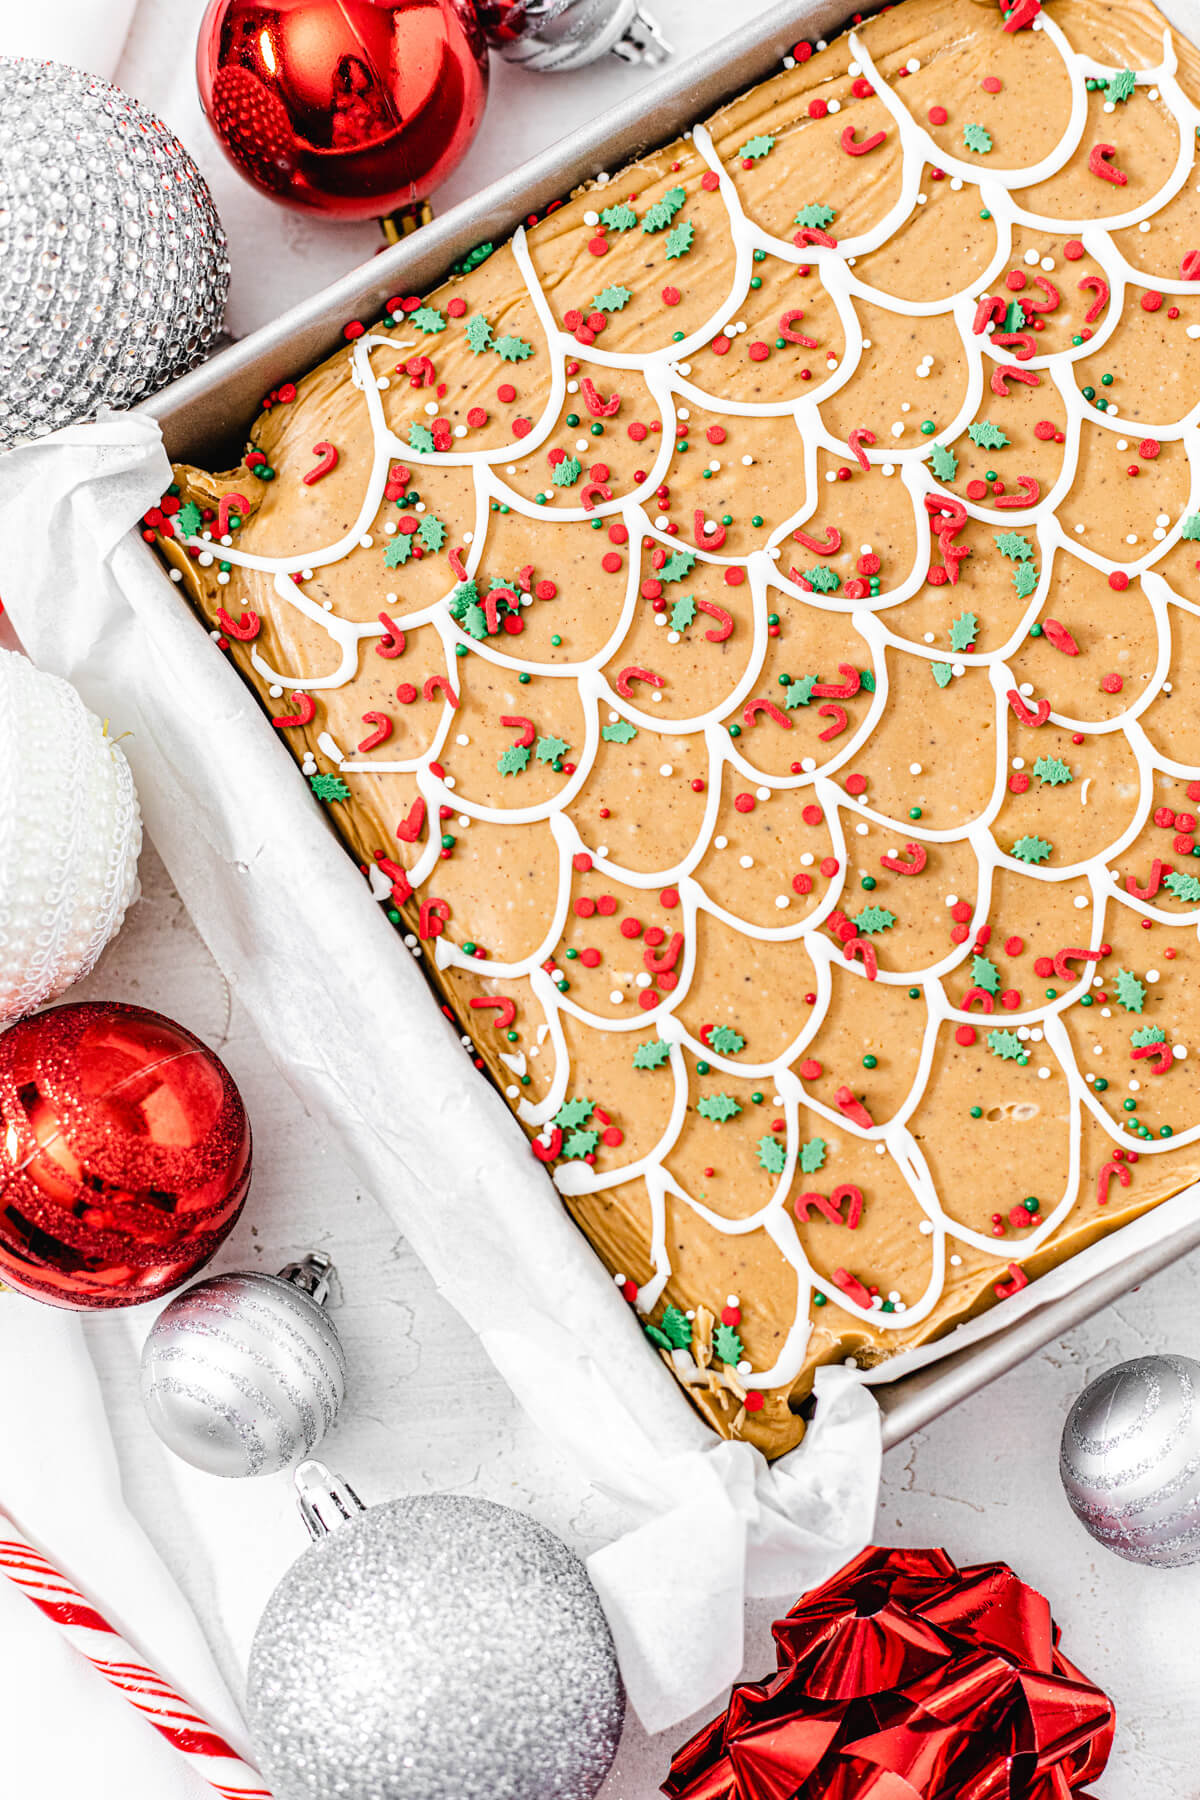 fudge topped with Christmas sprinkles in a square pan with red and silver ornaments around the side of the pan